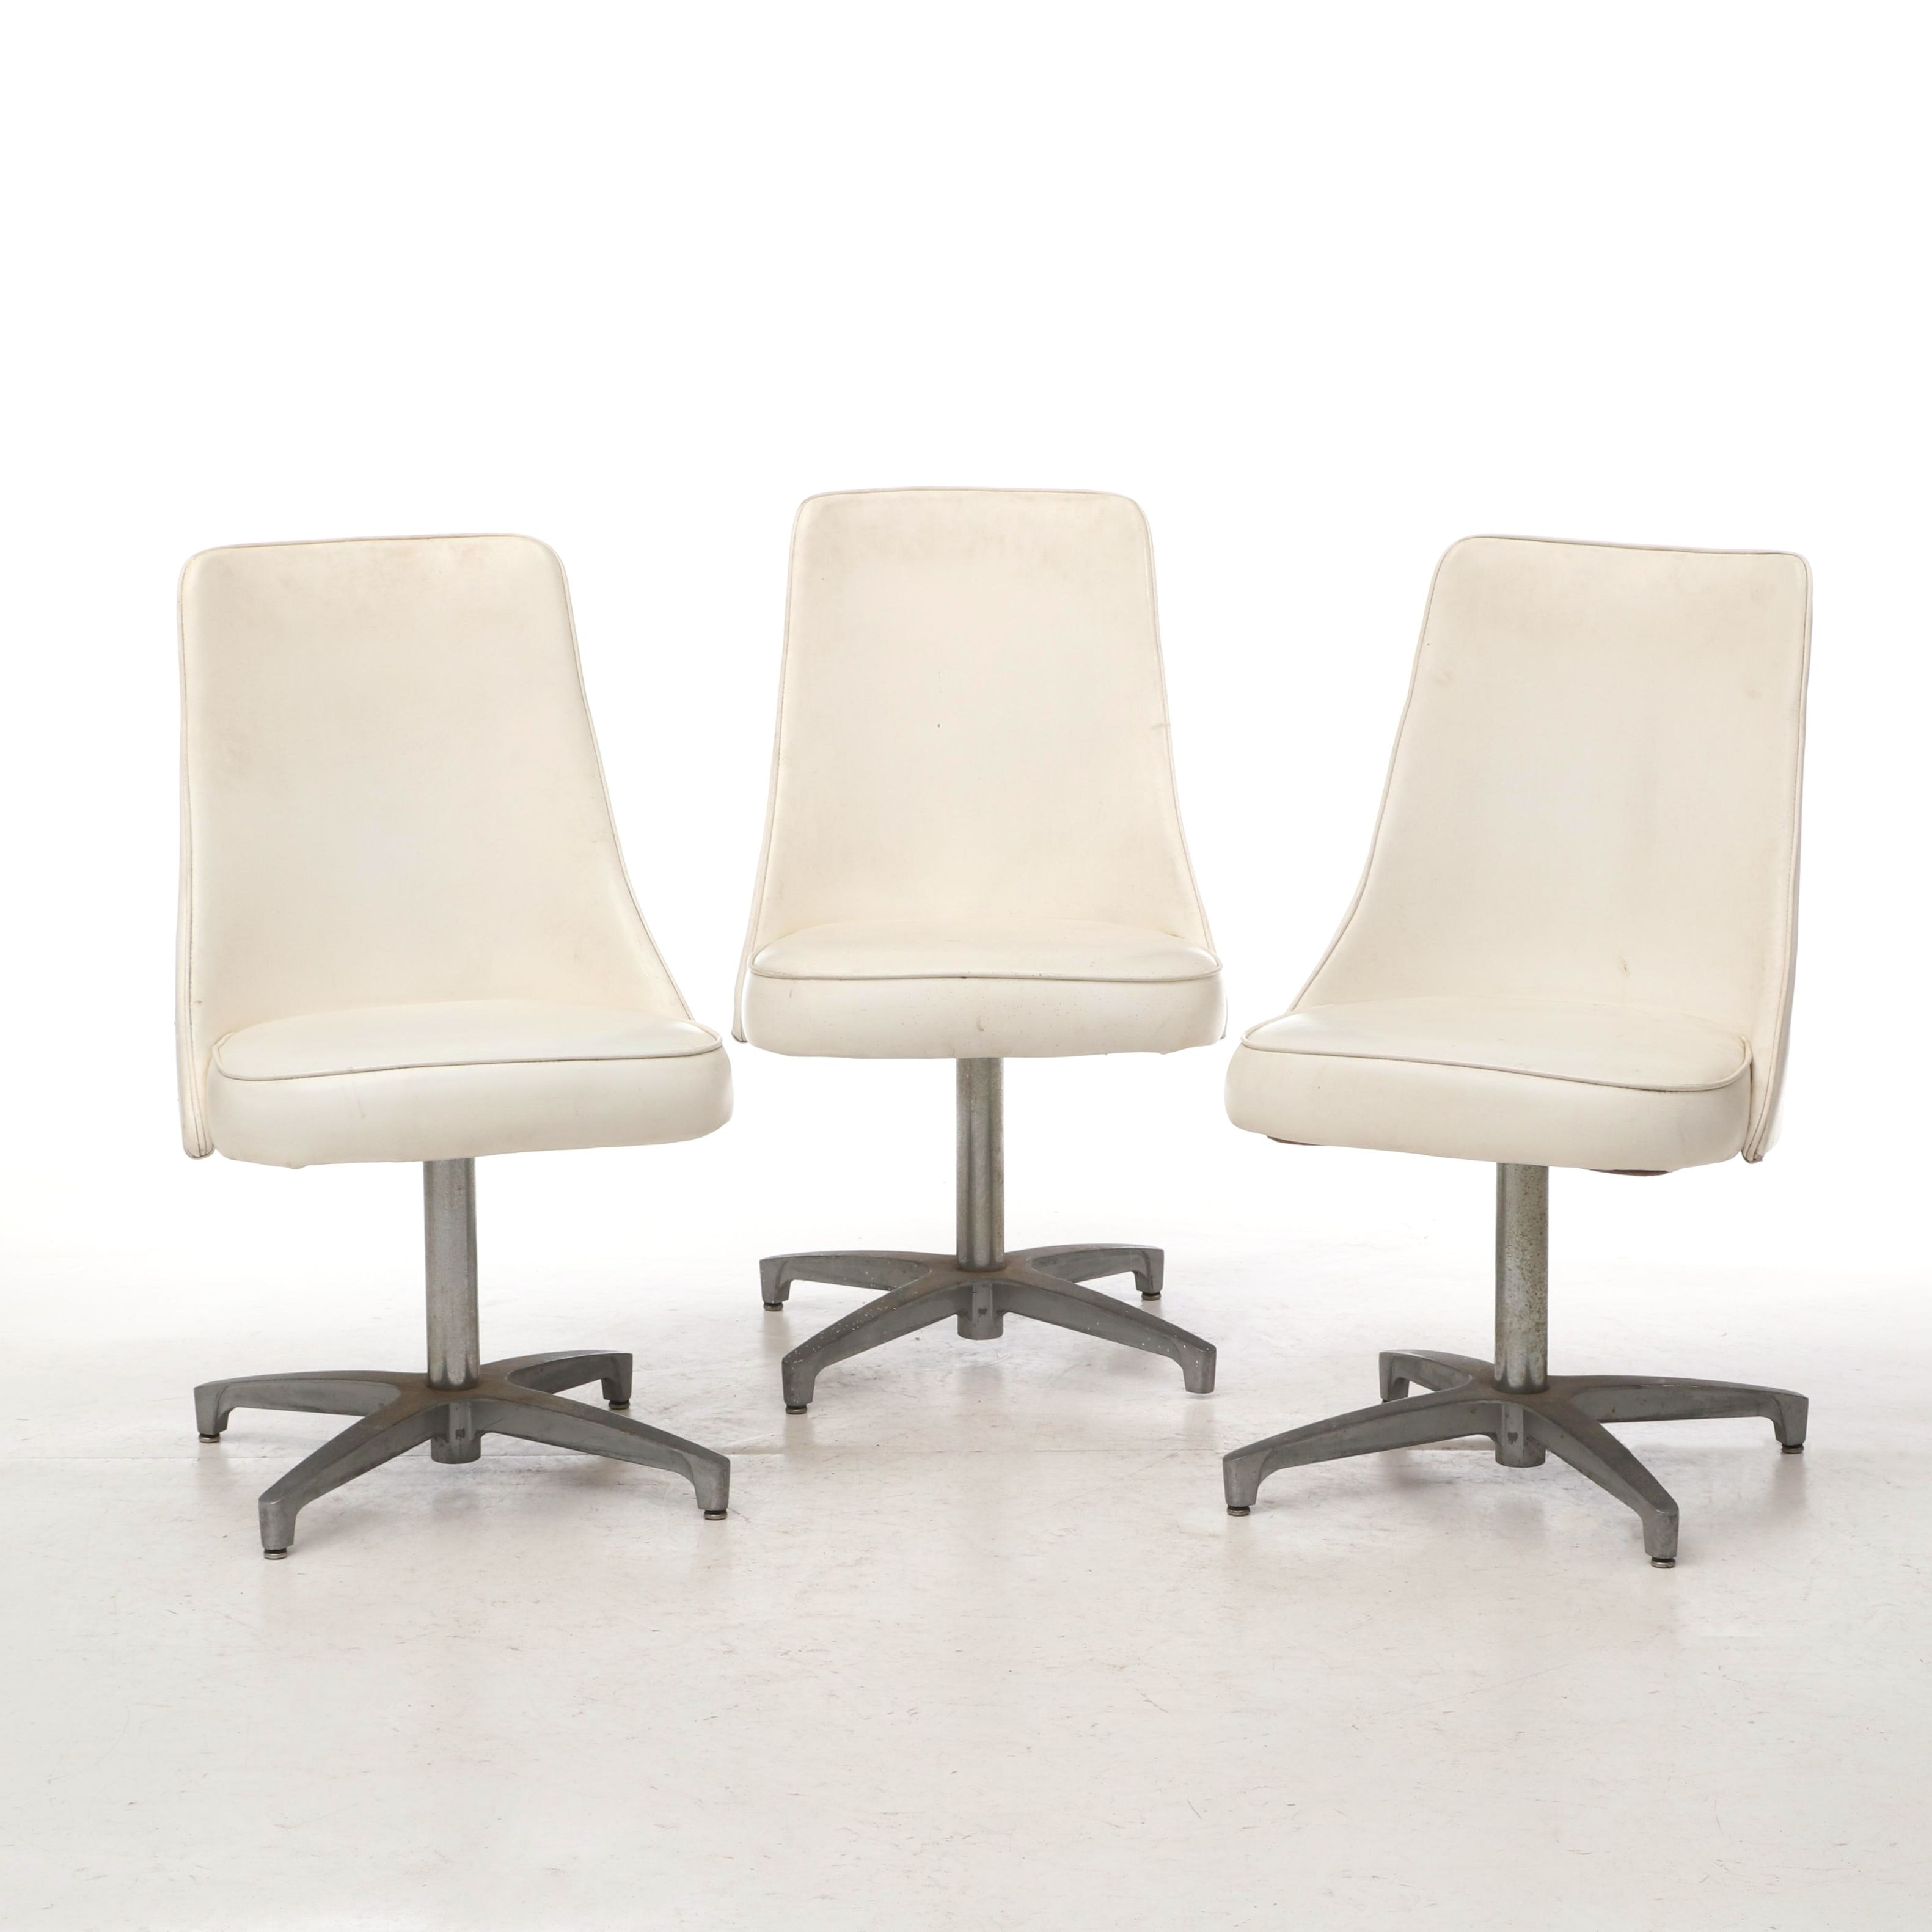 Mid-Century Modern Swivel Side Chairs by Chromcraft, Mid-20th Century